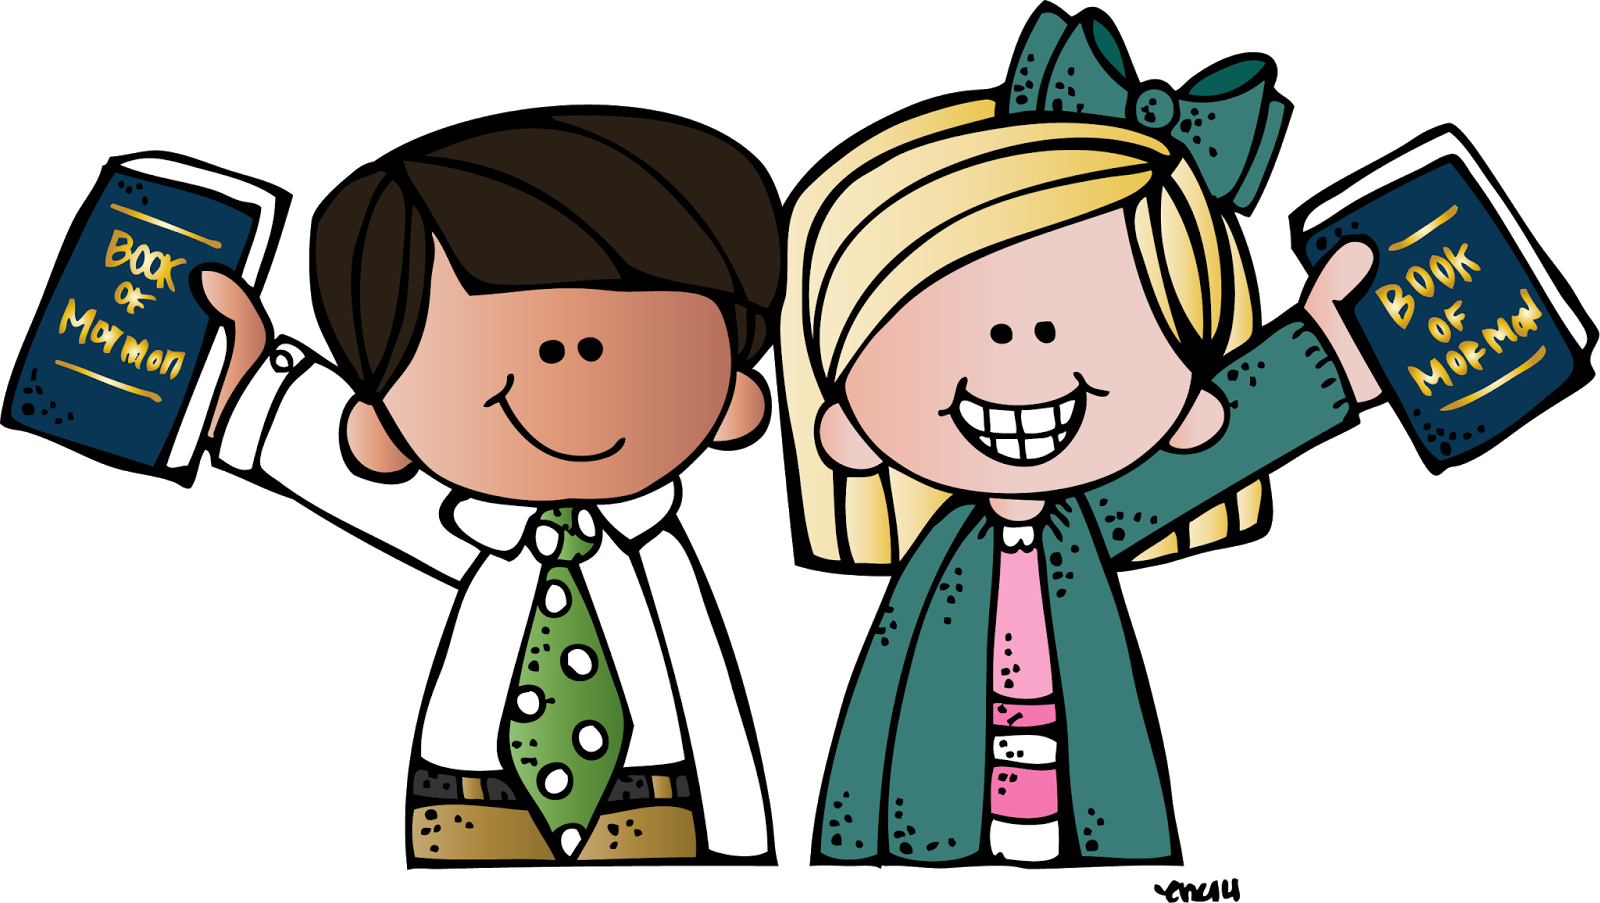 4 siblings clipart with 3 girls and 1 boy clipart freeuse download Sharing Clipart at GetDrawings.com | Free for personal use Sharing ... clipart freeuse download